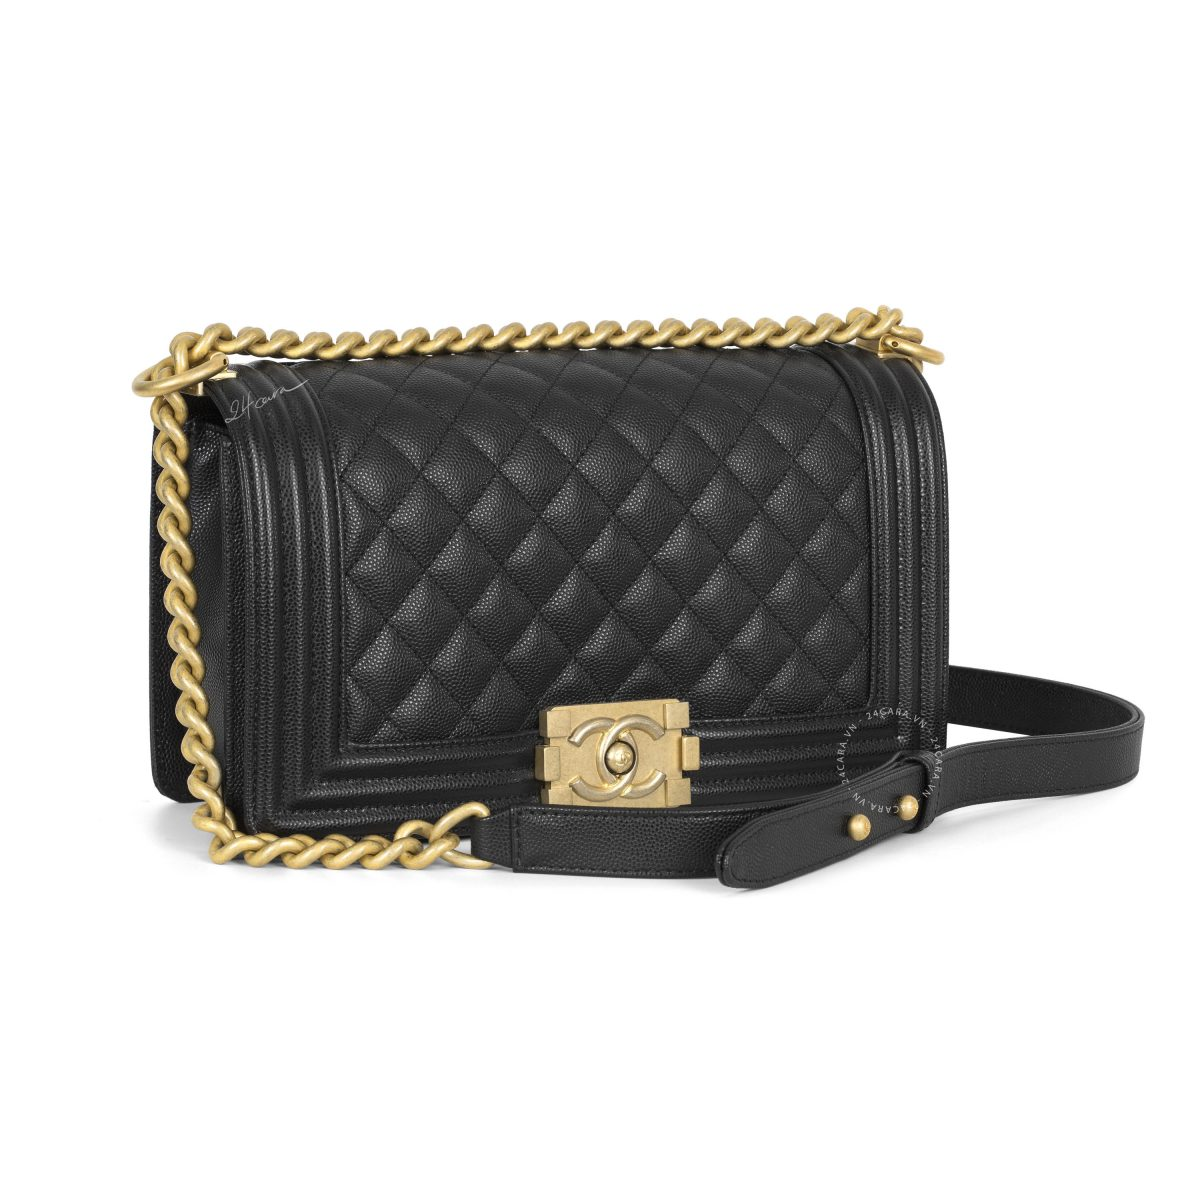 Chanel Boy Caviar Black Medium Bag